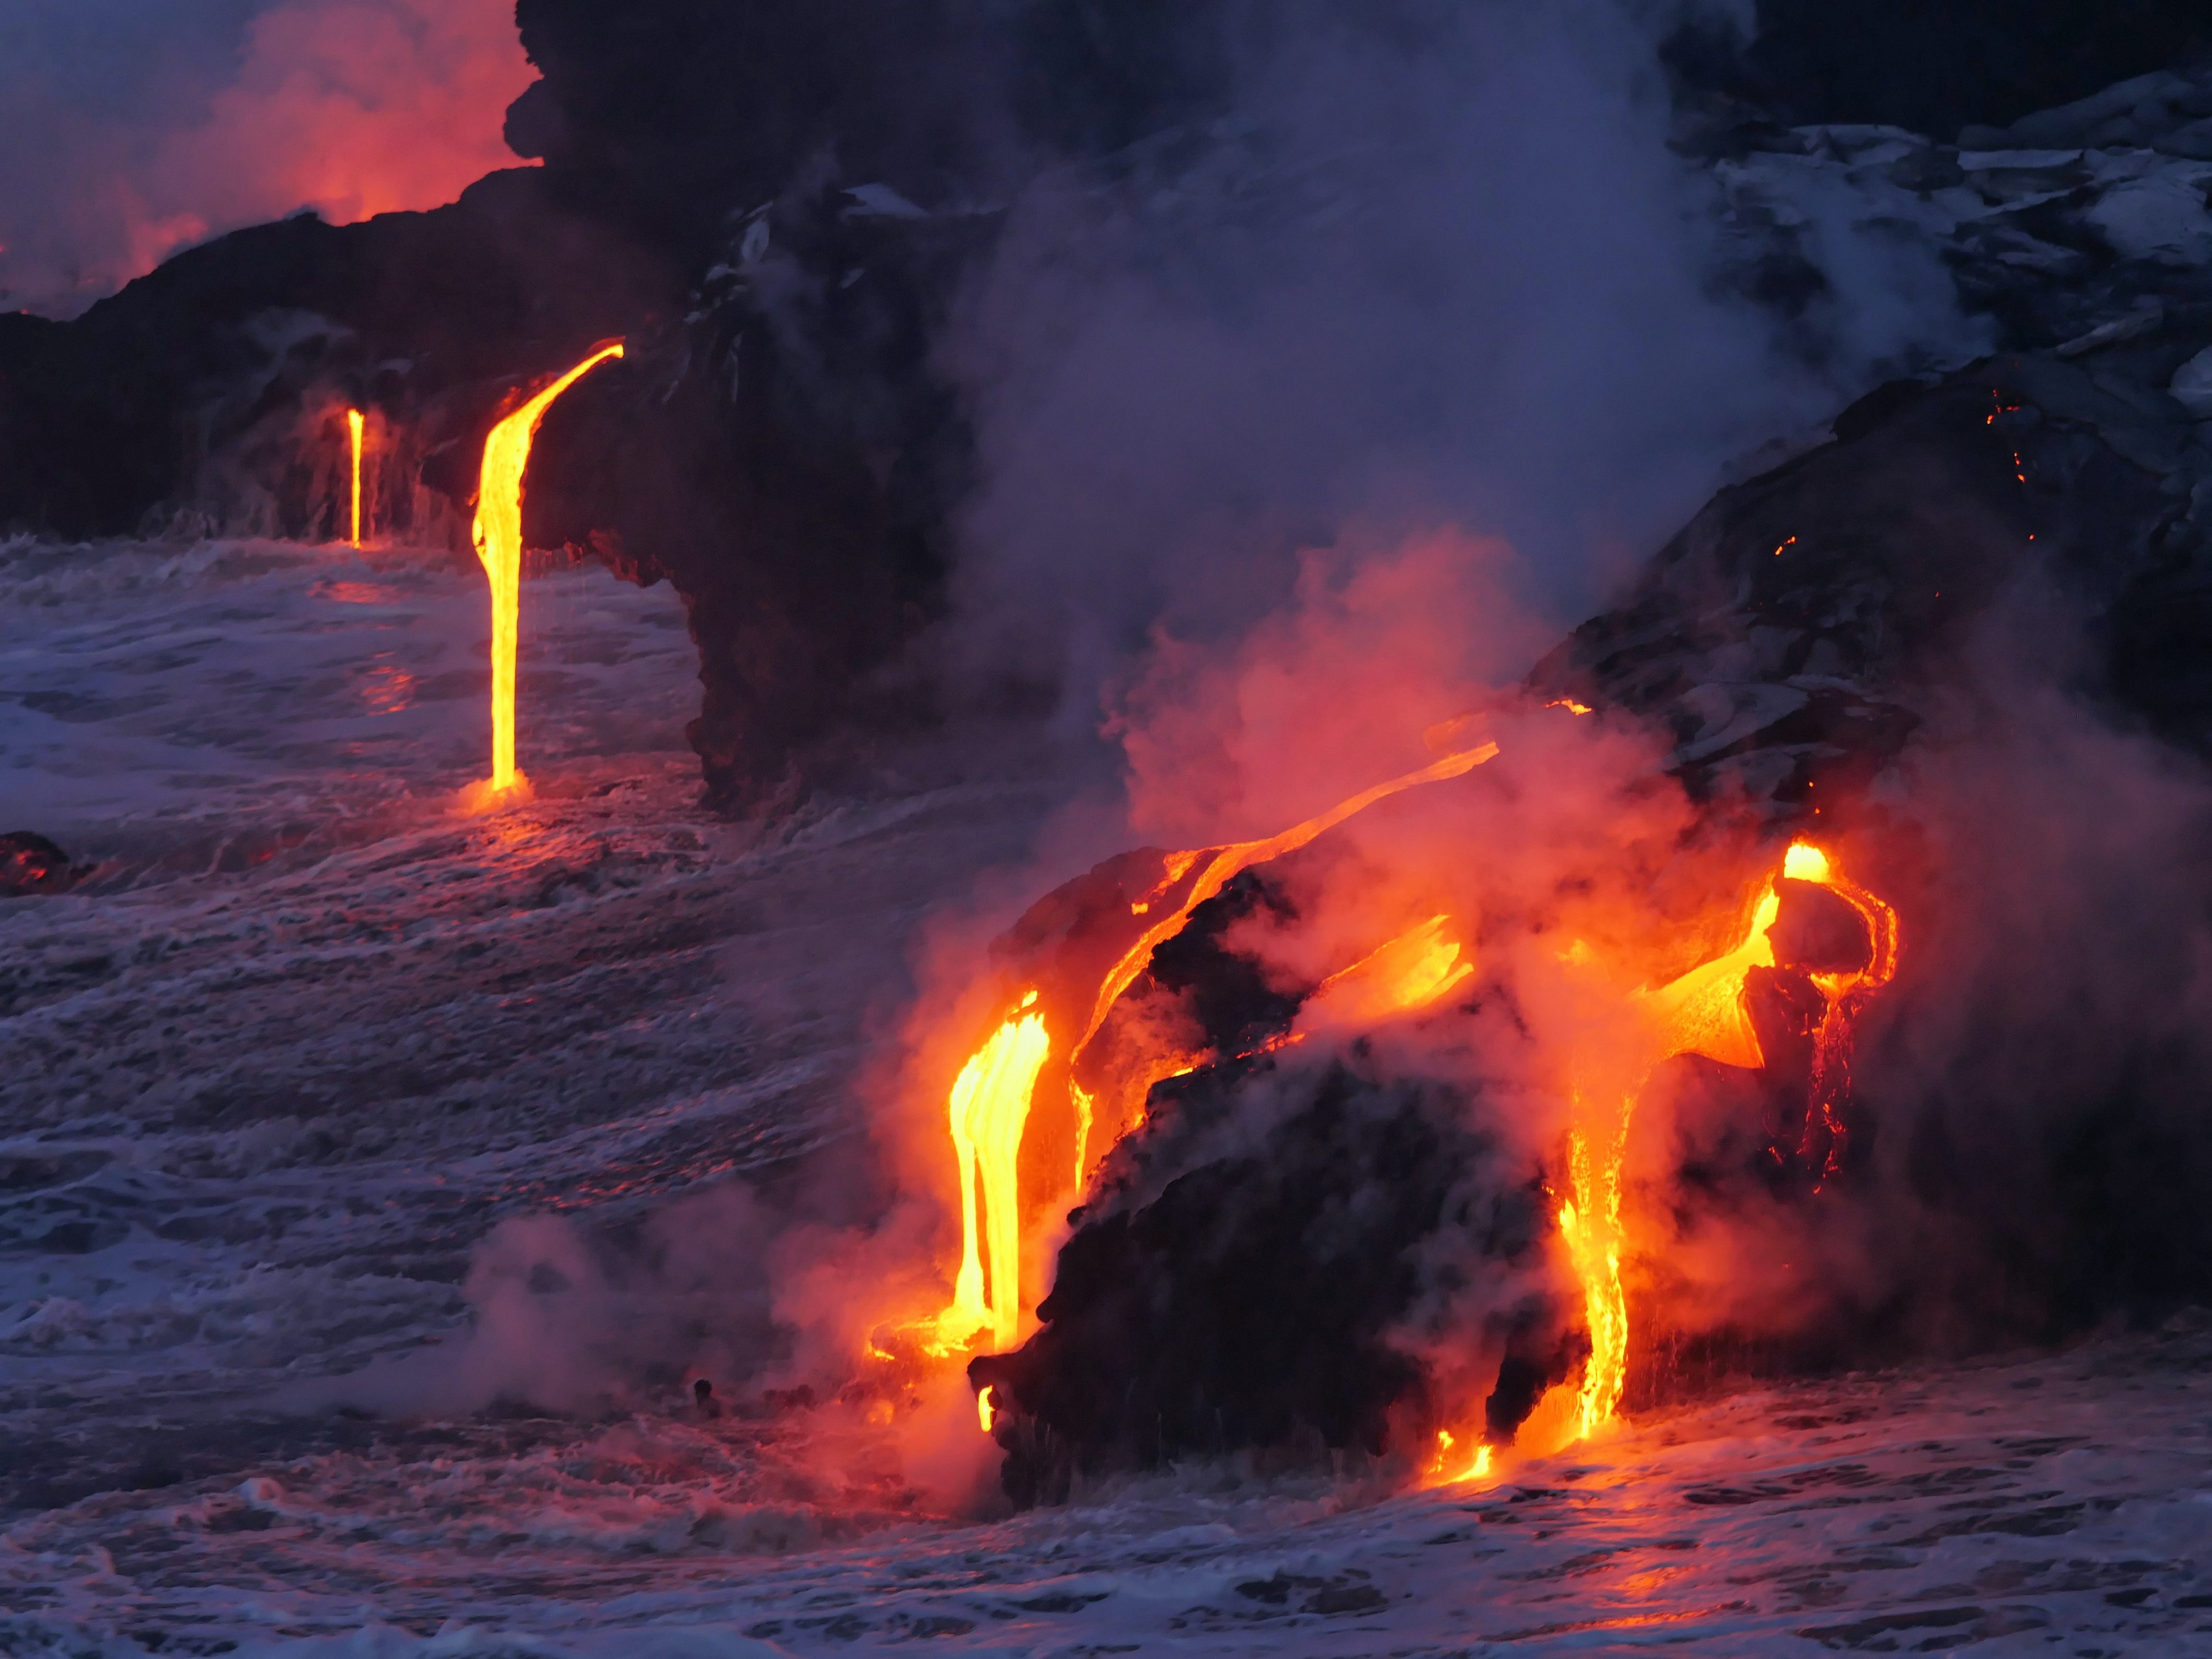 Lava from an erupting volcano entering the ocean.